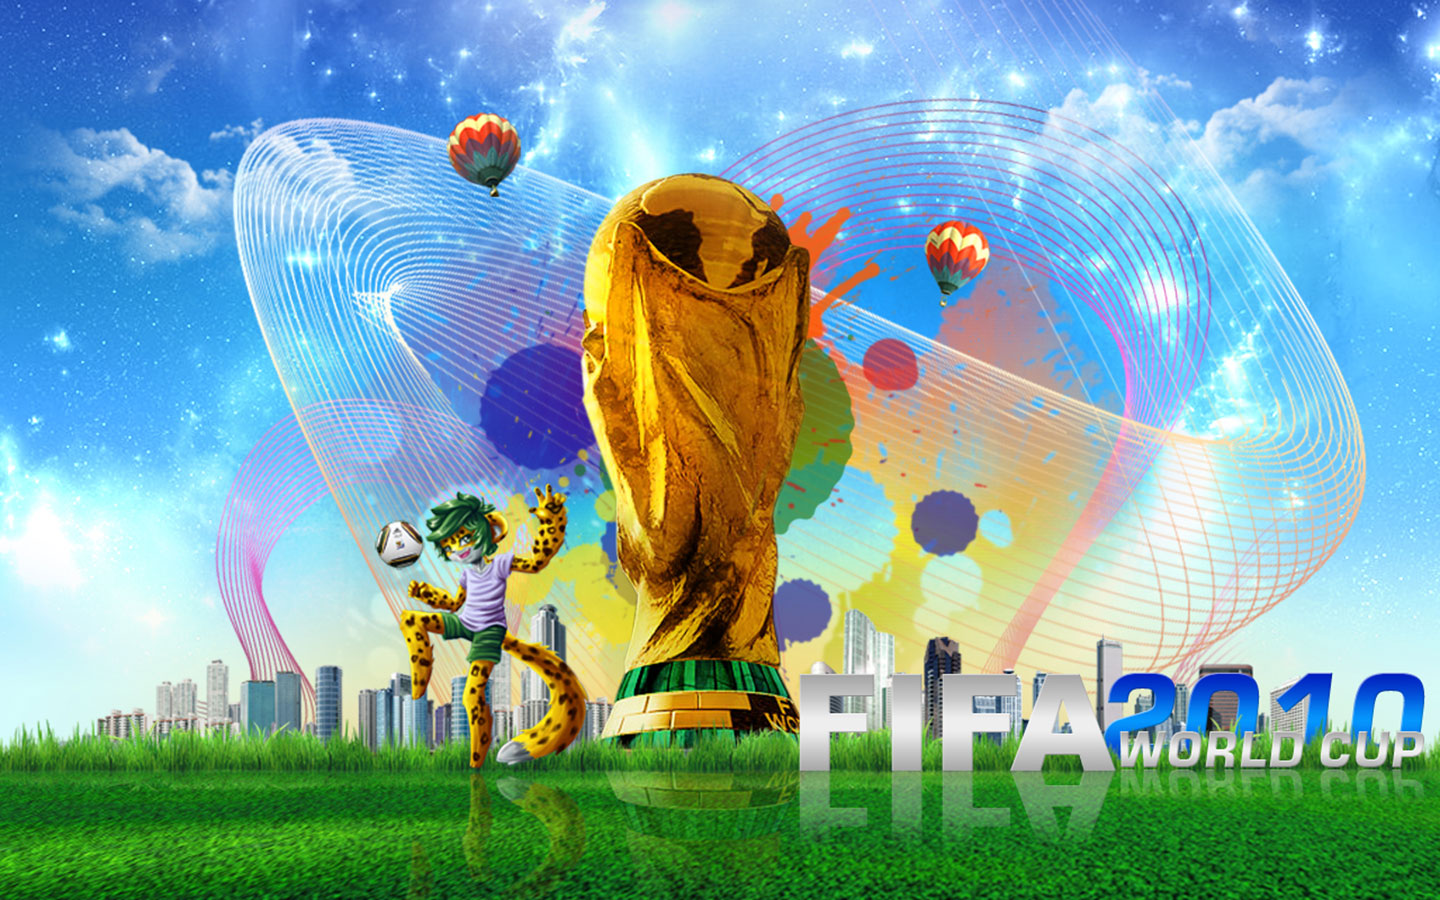 ... fun and enjoy more than 20+ High Resolution World Cup 2010 Wallpapers